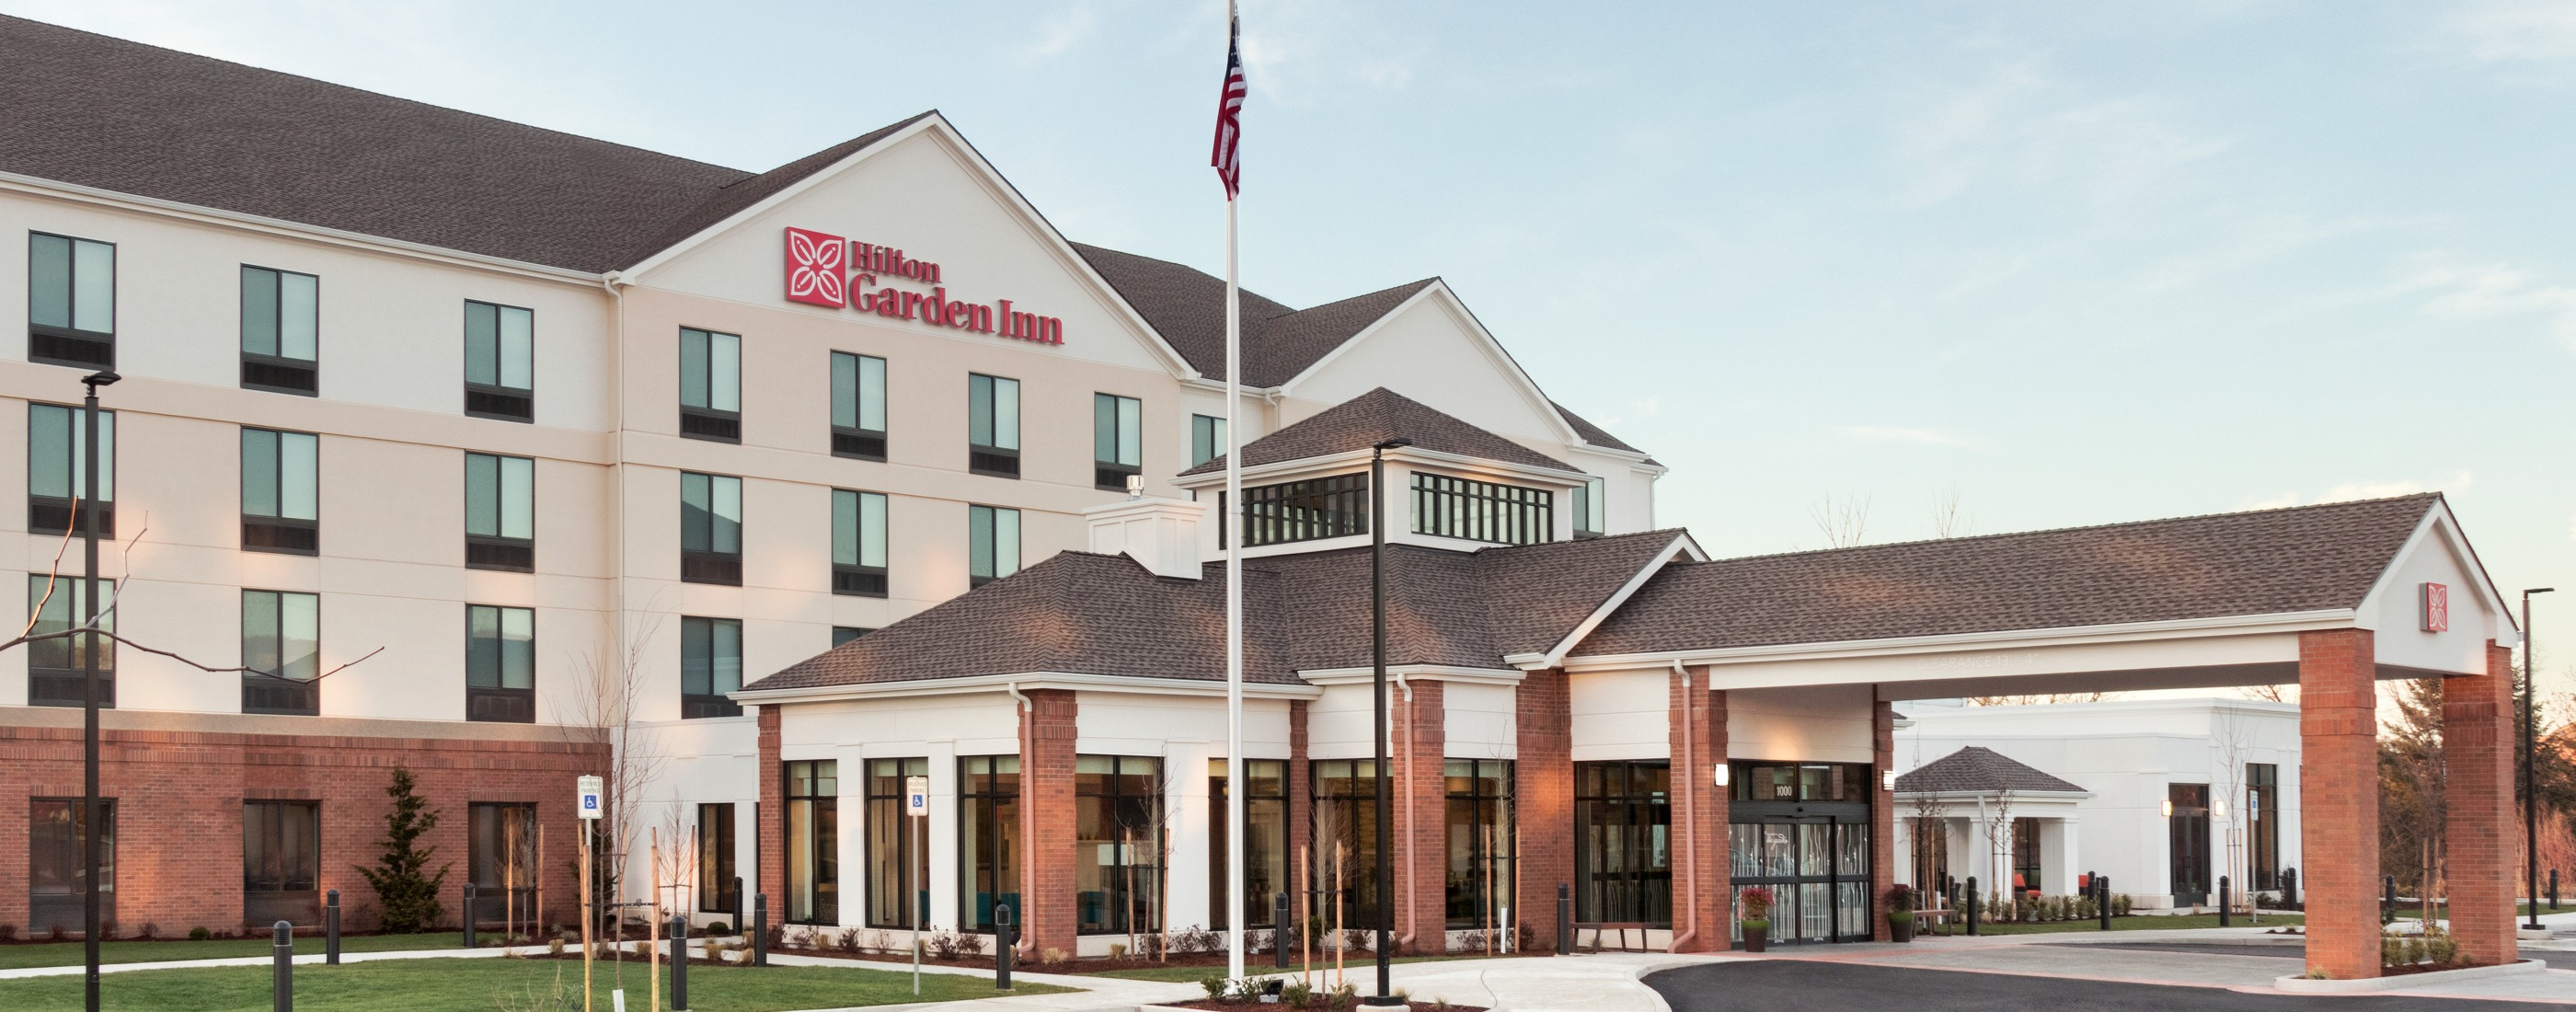 Hilton Garden Inn in Medford Oregon